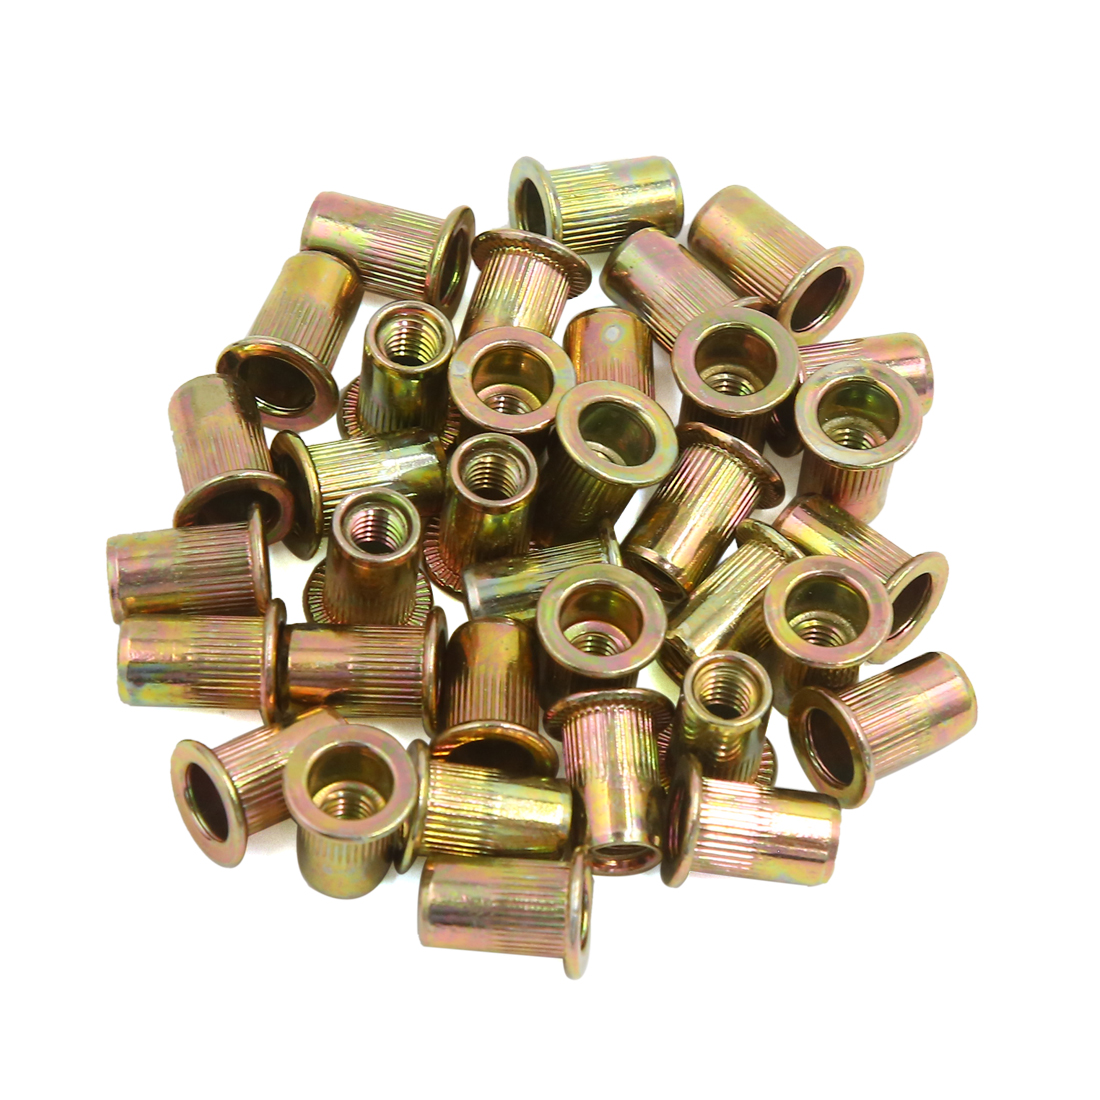 35pcs M6 Bronze Tone Car Carbon Steel Thread Flat Head Rivet Nut Insert Nutserts